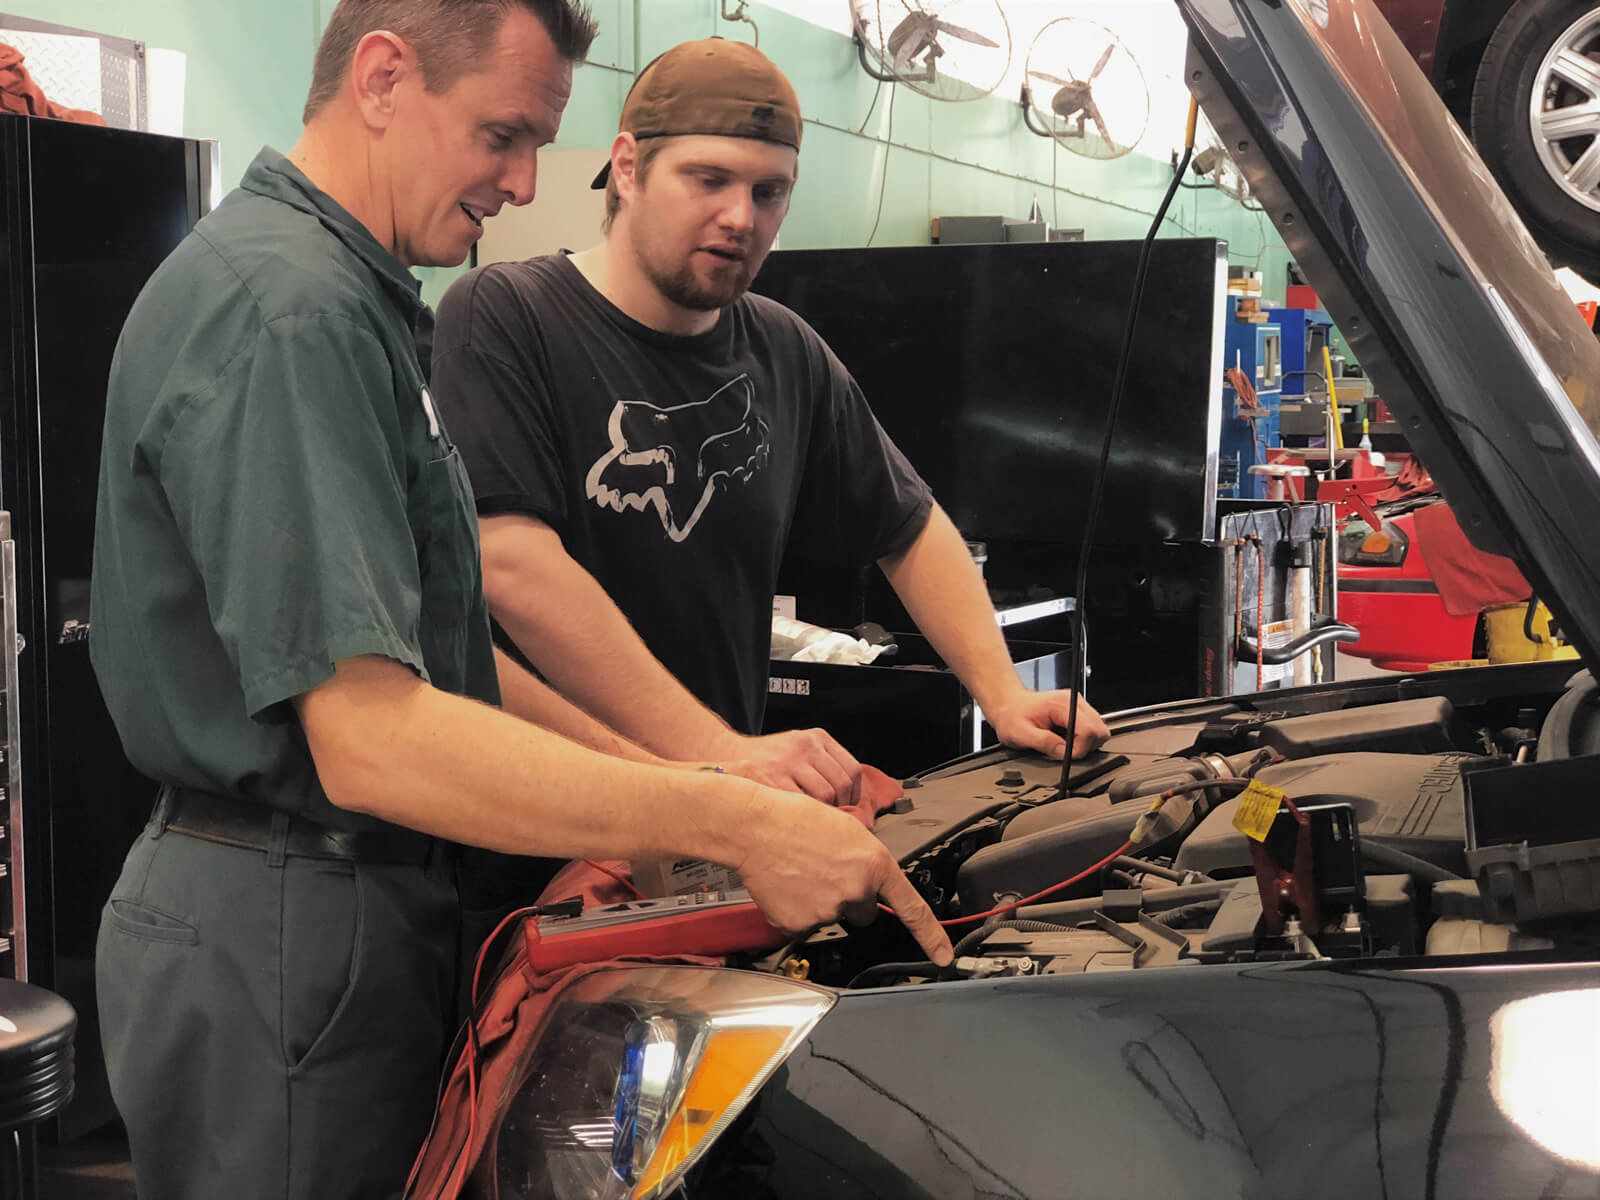 Two mechanics looking into the front of a car for maintenance